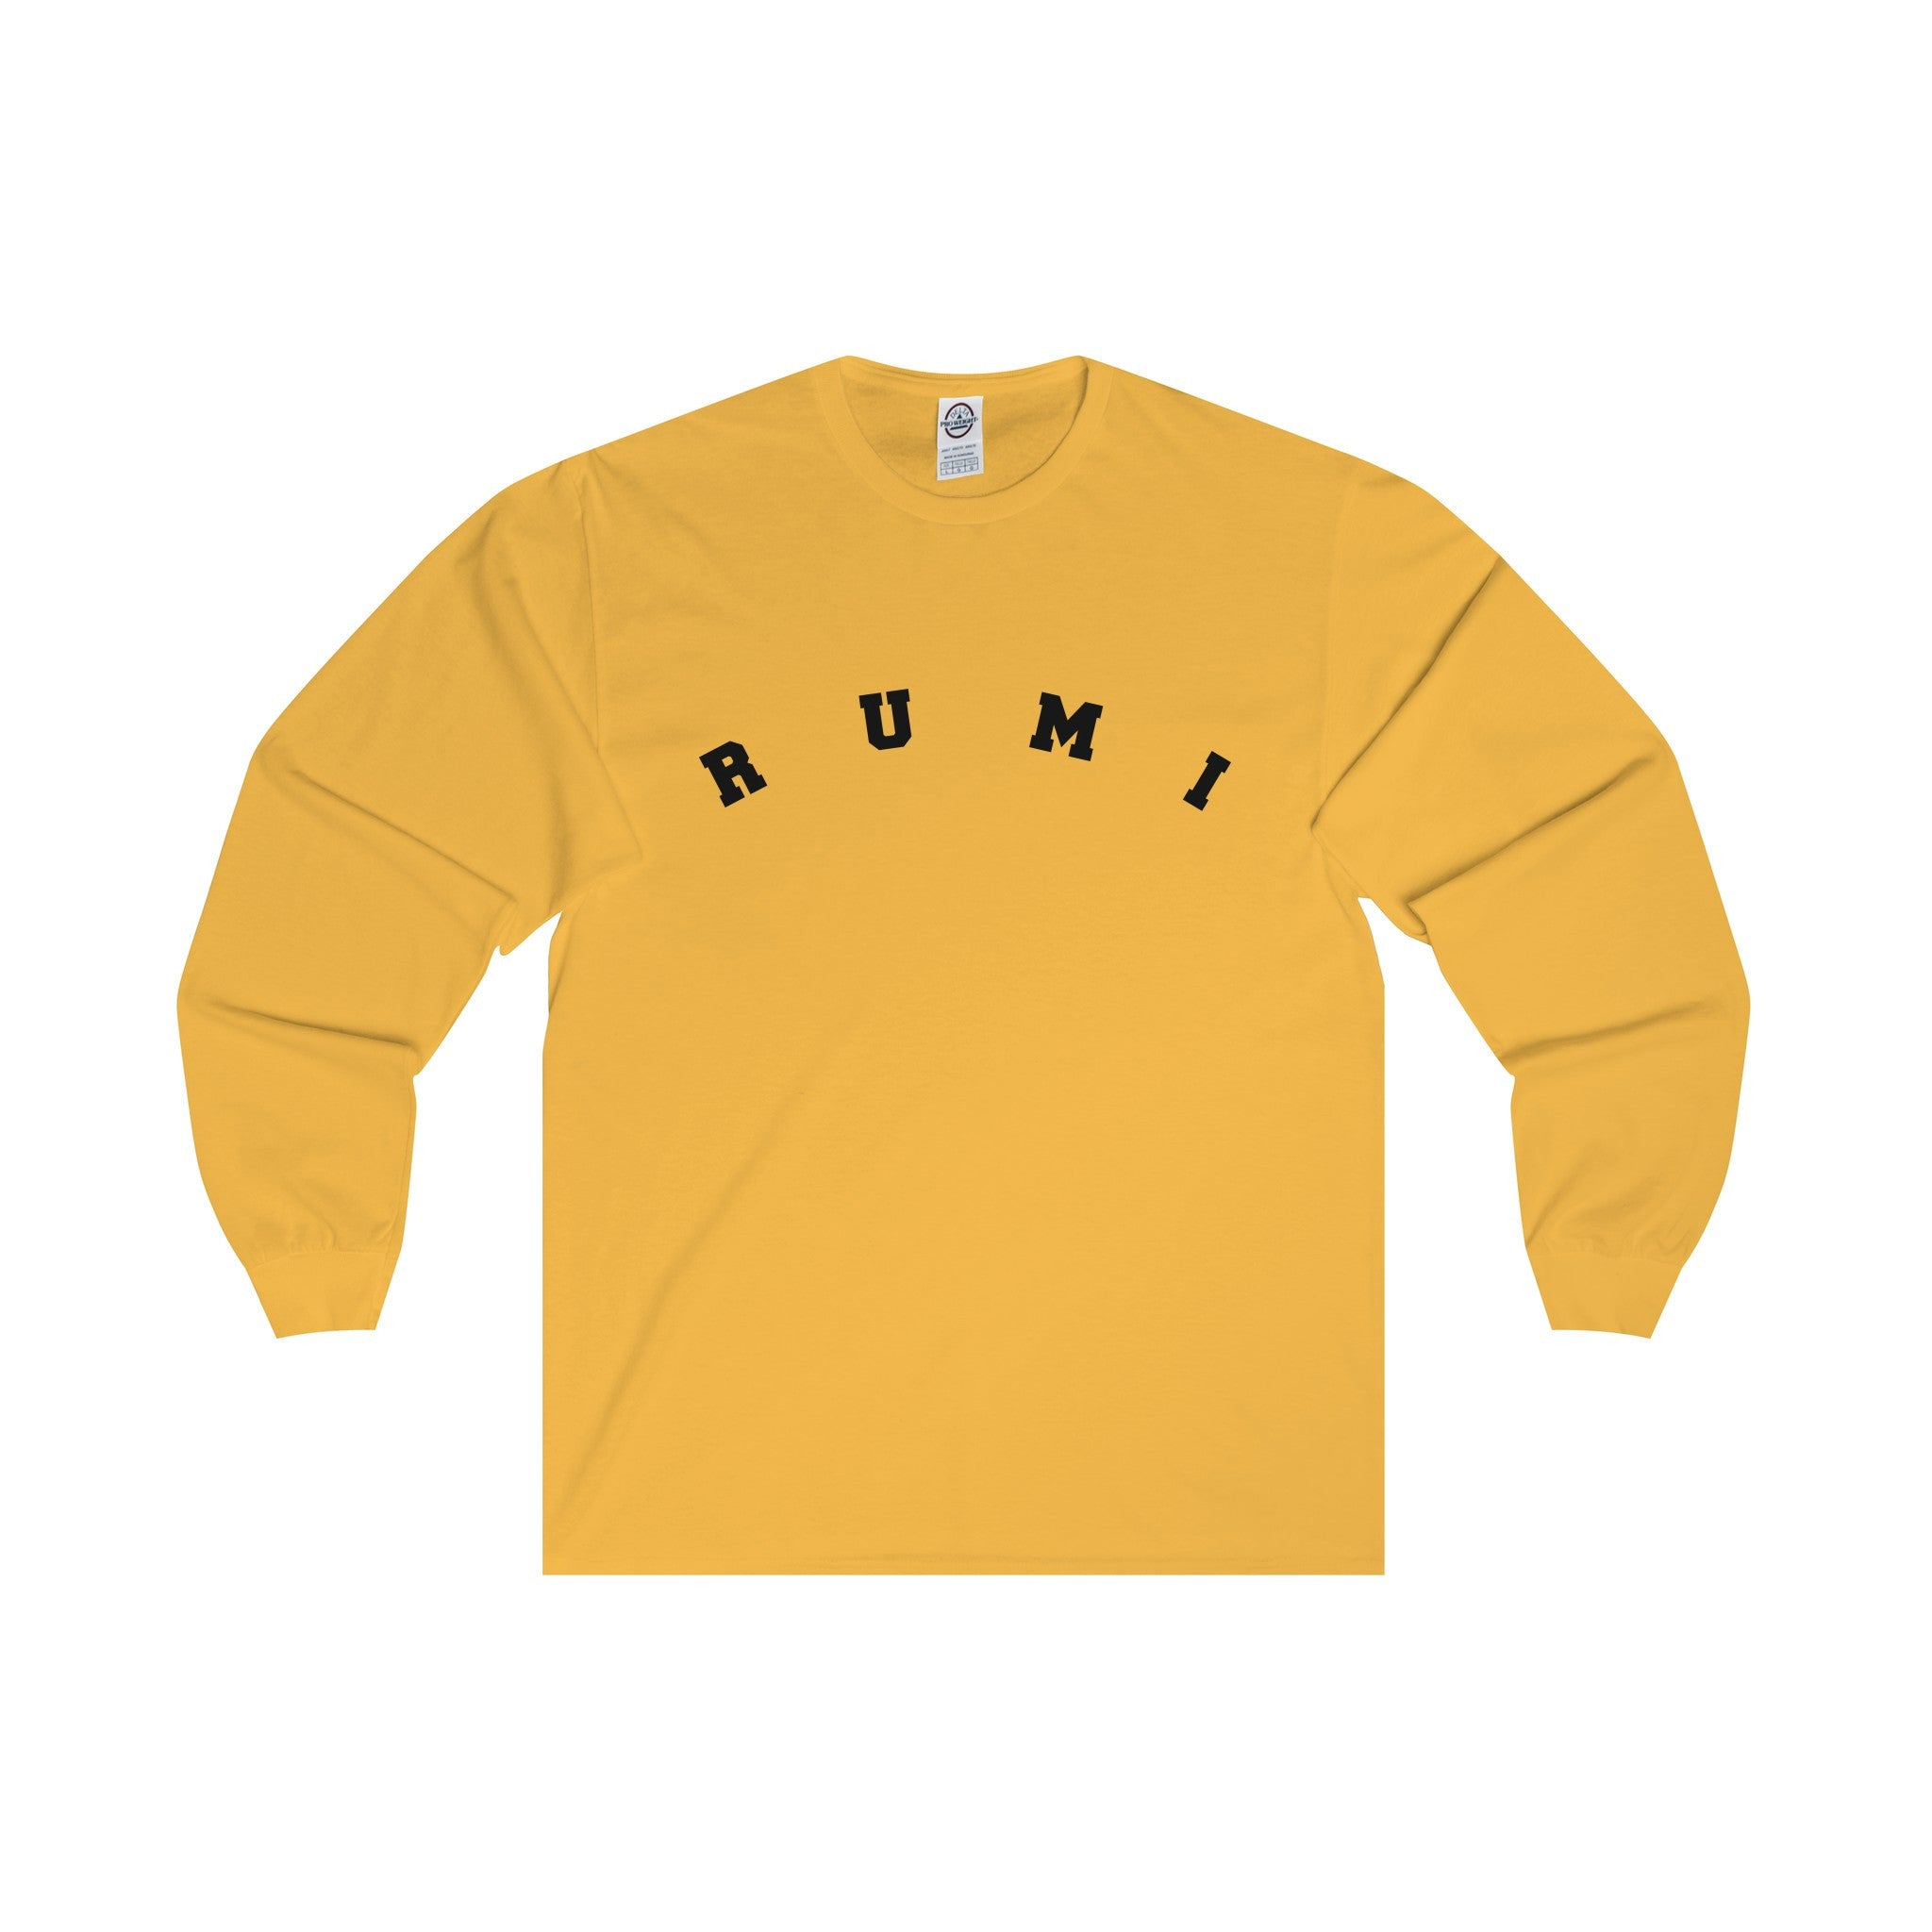 RUMI Black Letter Long-Sleeve Tee (5 colors available)